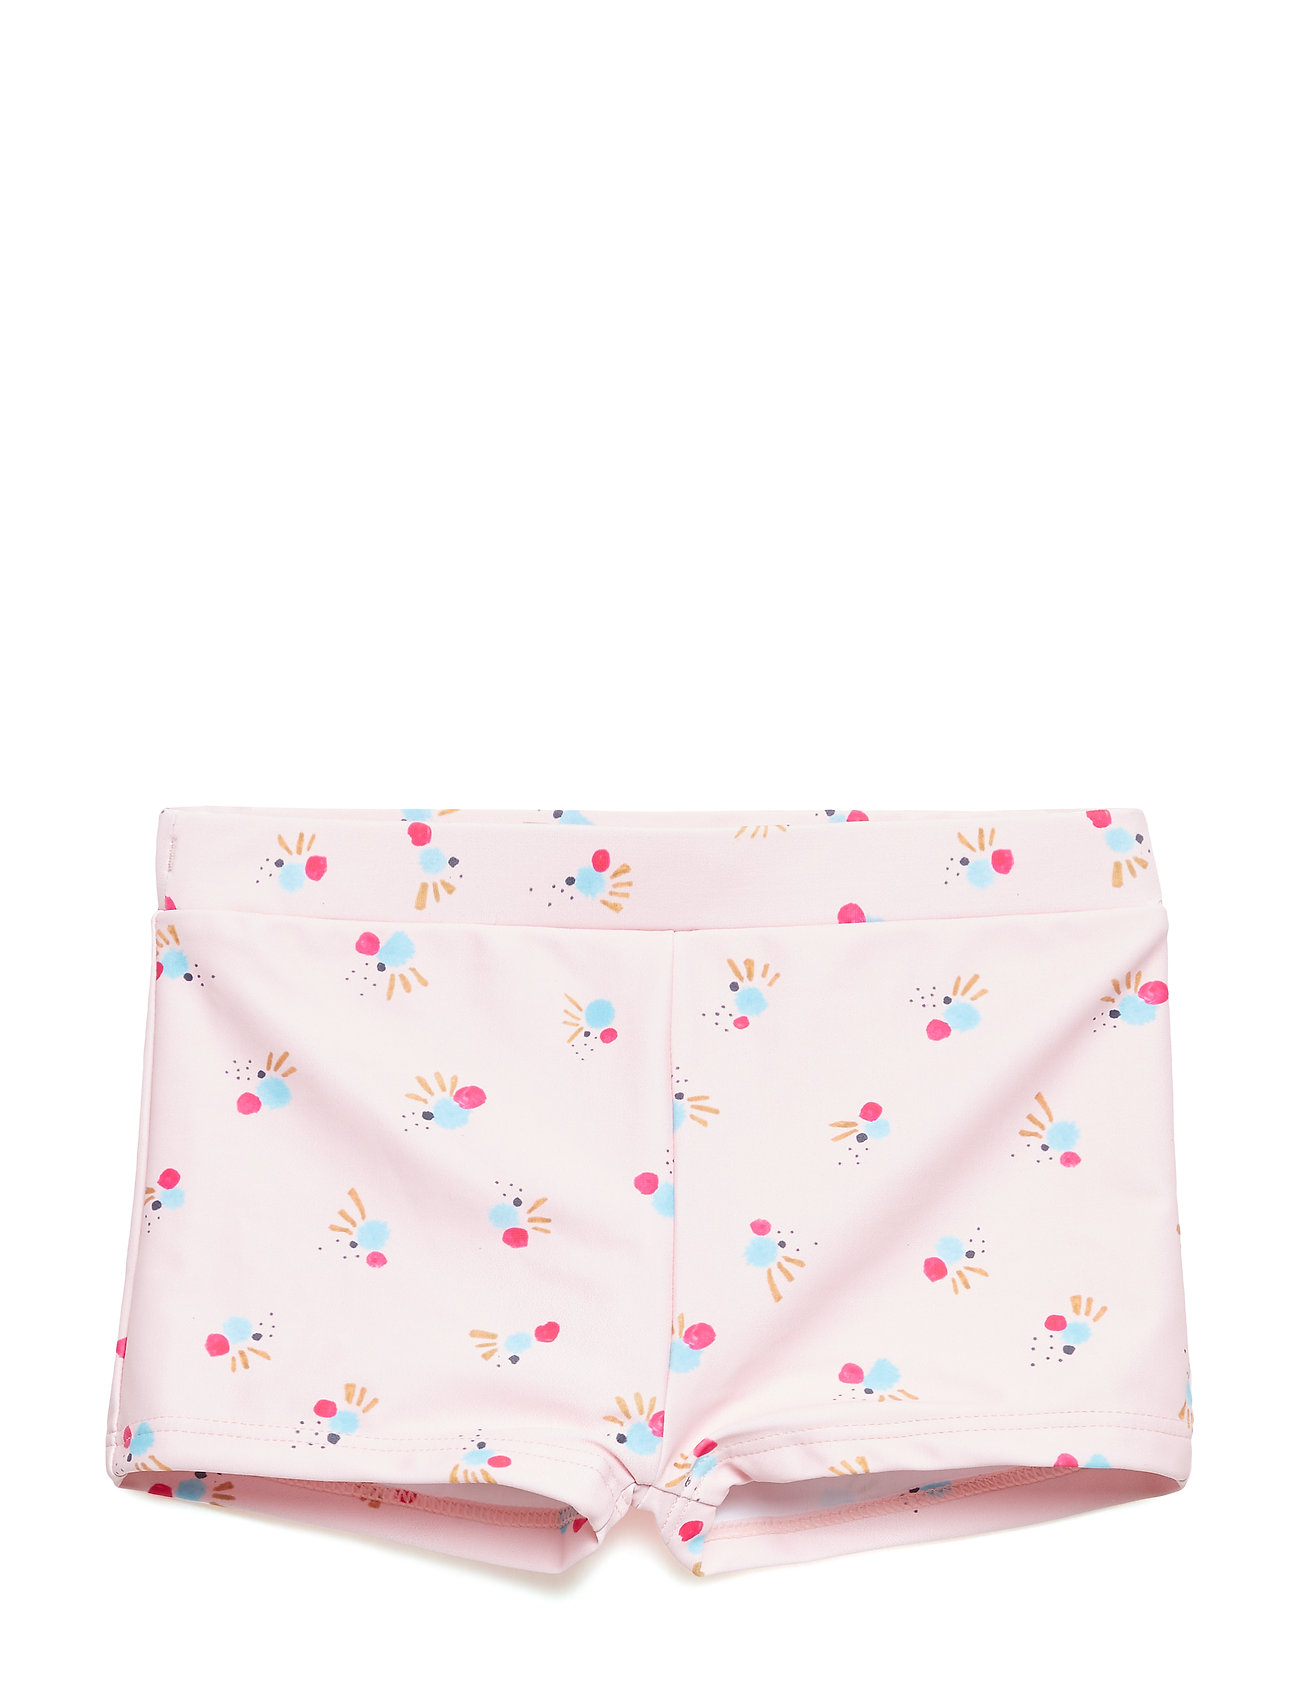 Soft Gallery Pamela Swim Trunk - CHINTZ ROSE, AOP COCKATOO SWIM